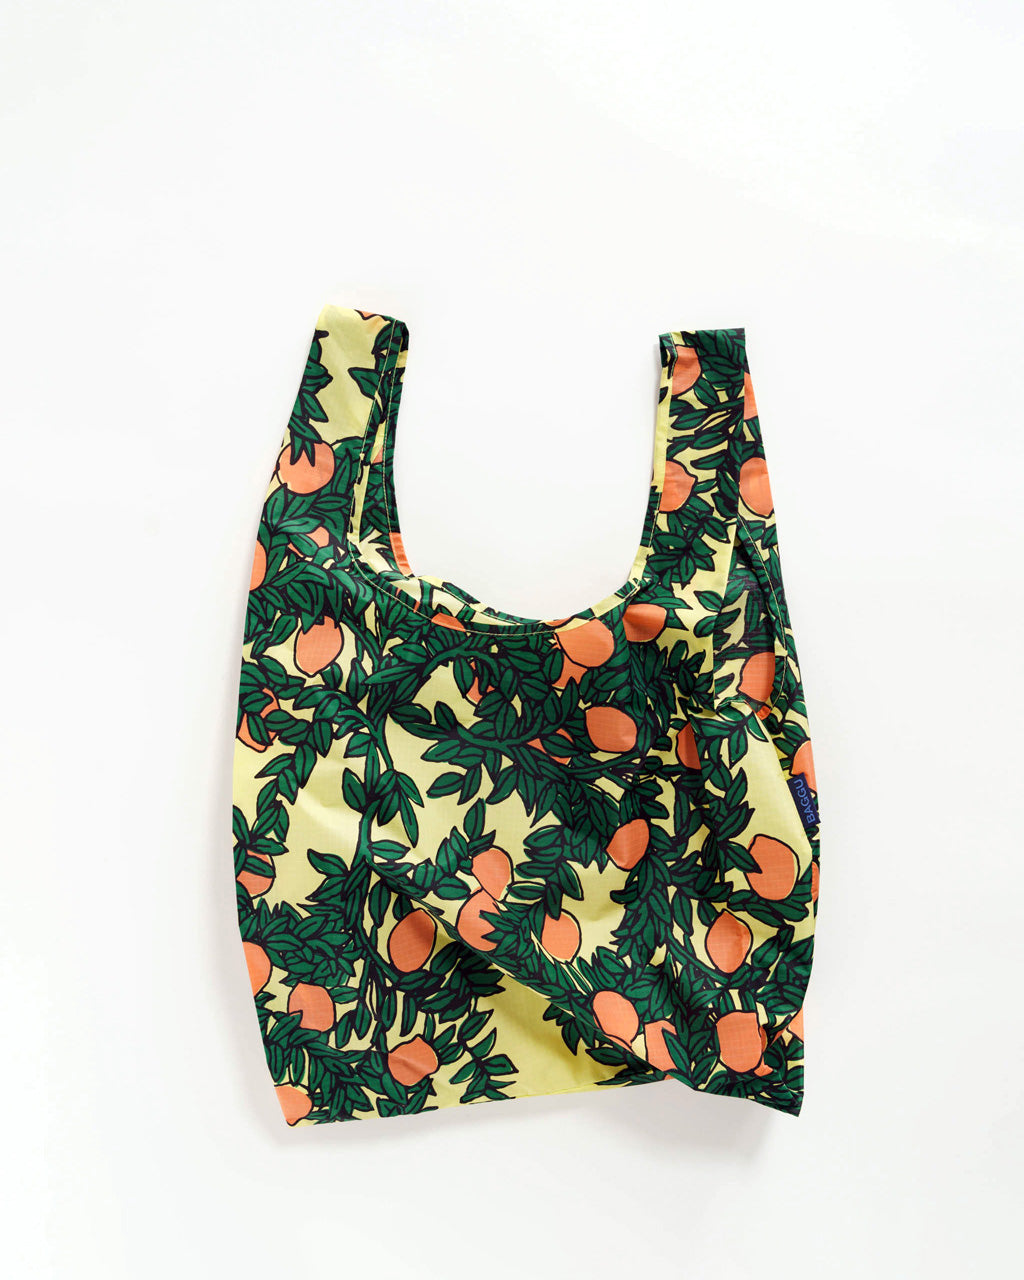 standard baggu with an orange tree pattern